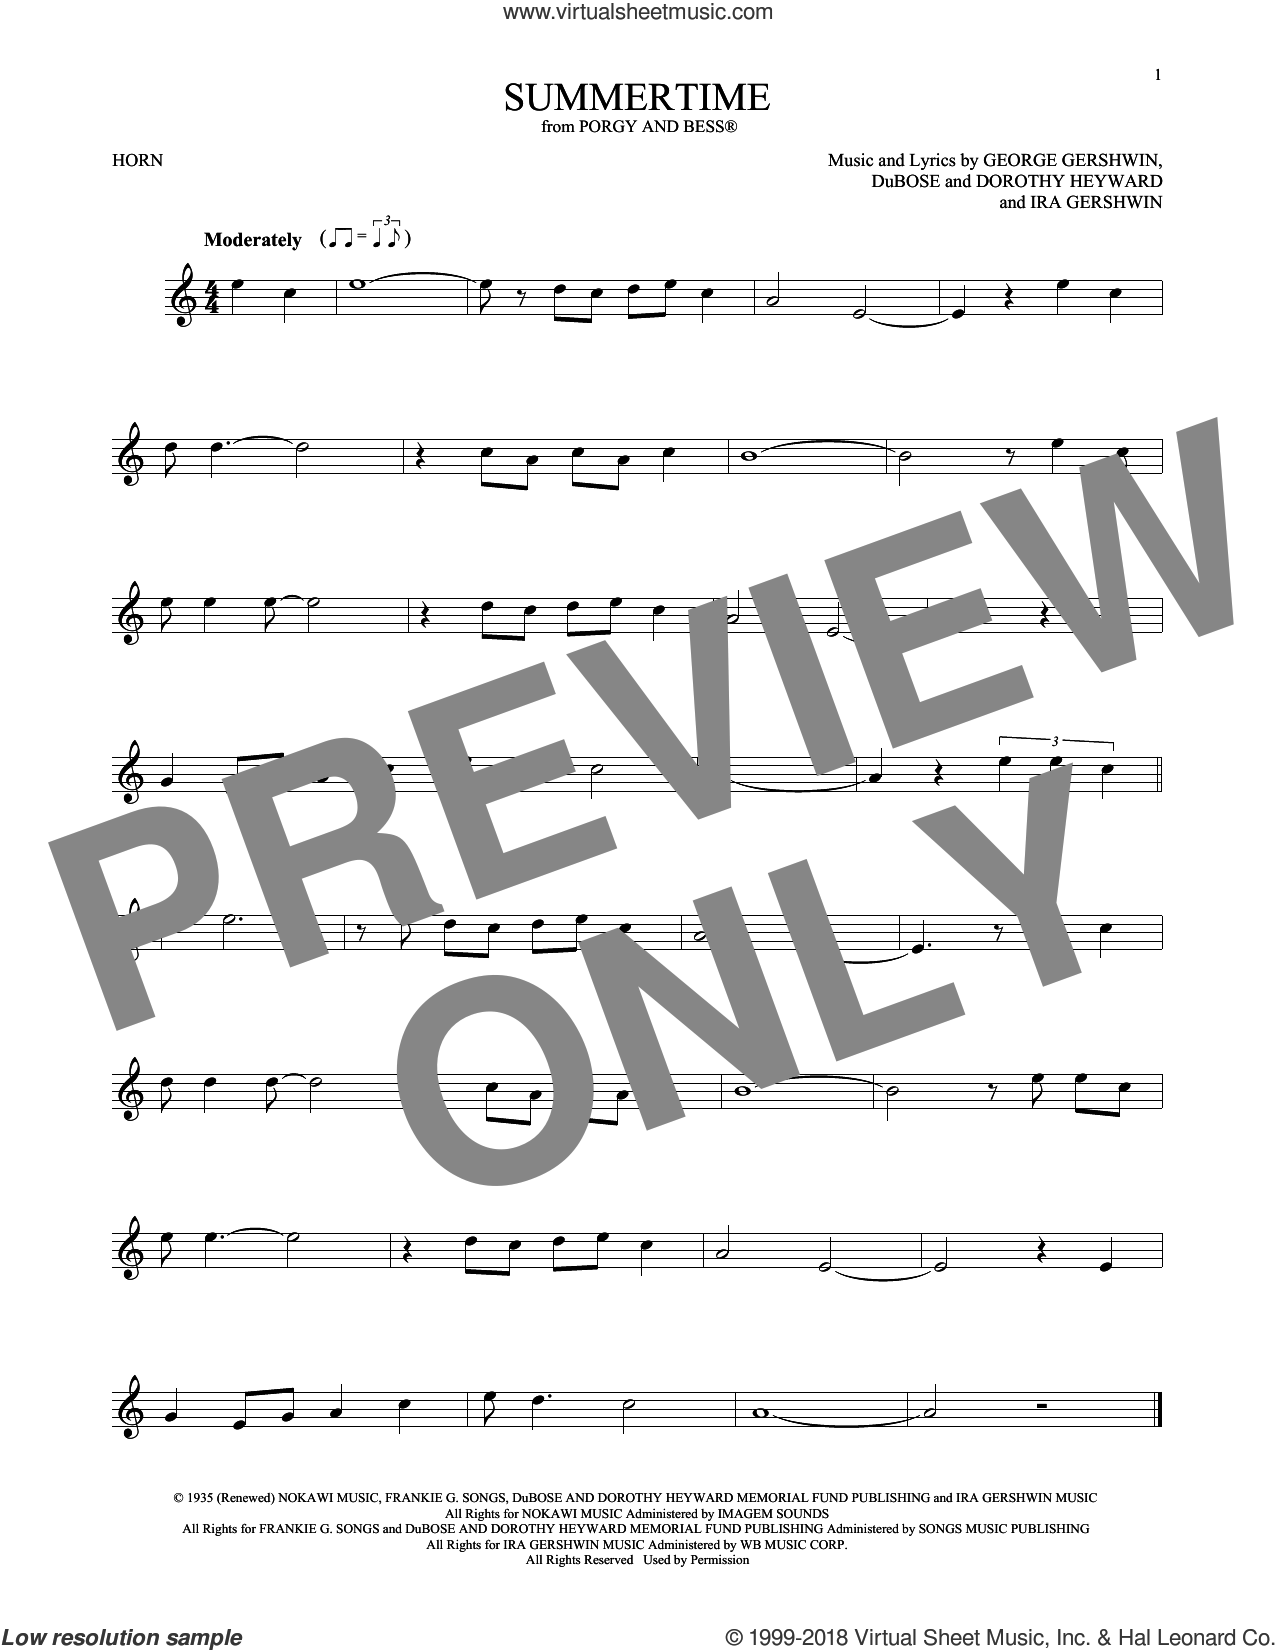 Summertime sheet music for horn solo by George Gershwin, Dorothy Heyward, DuBose Heyward and Ira Gershwin, intermediate skill level